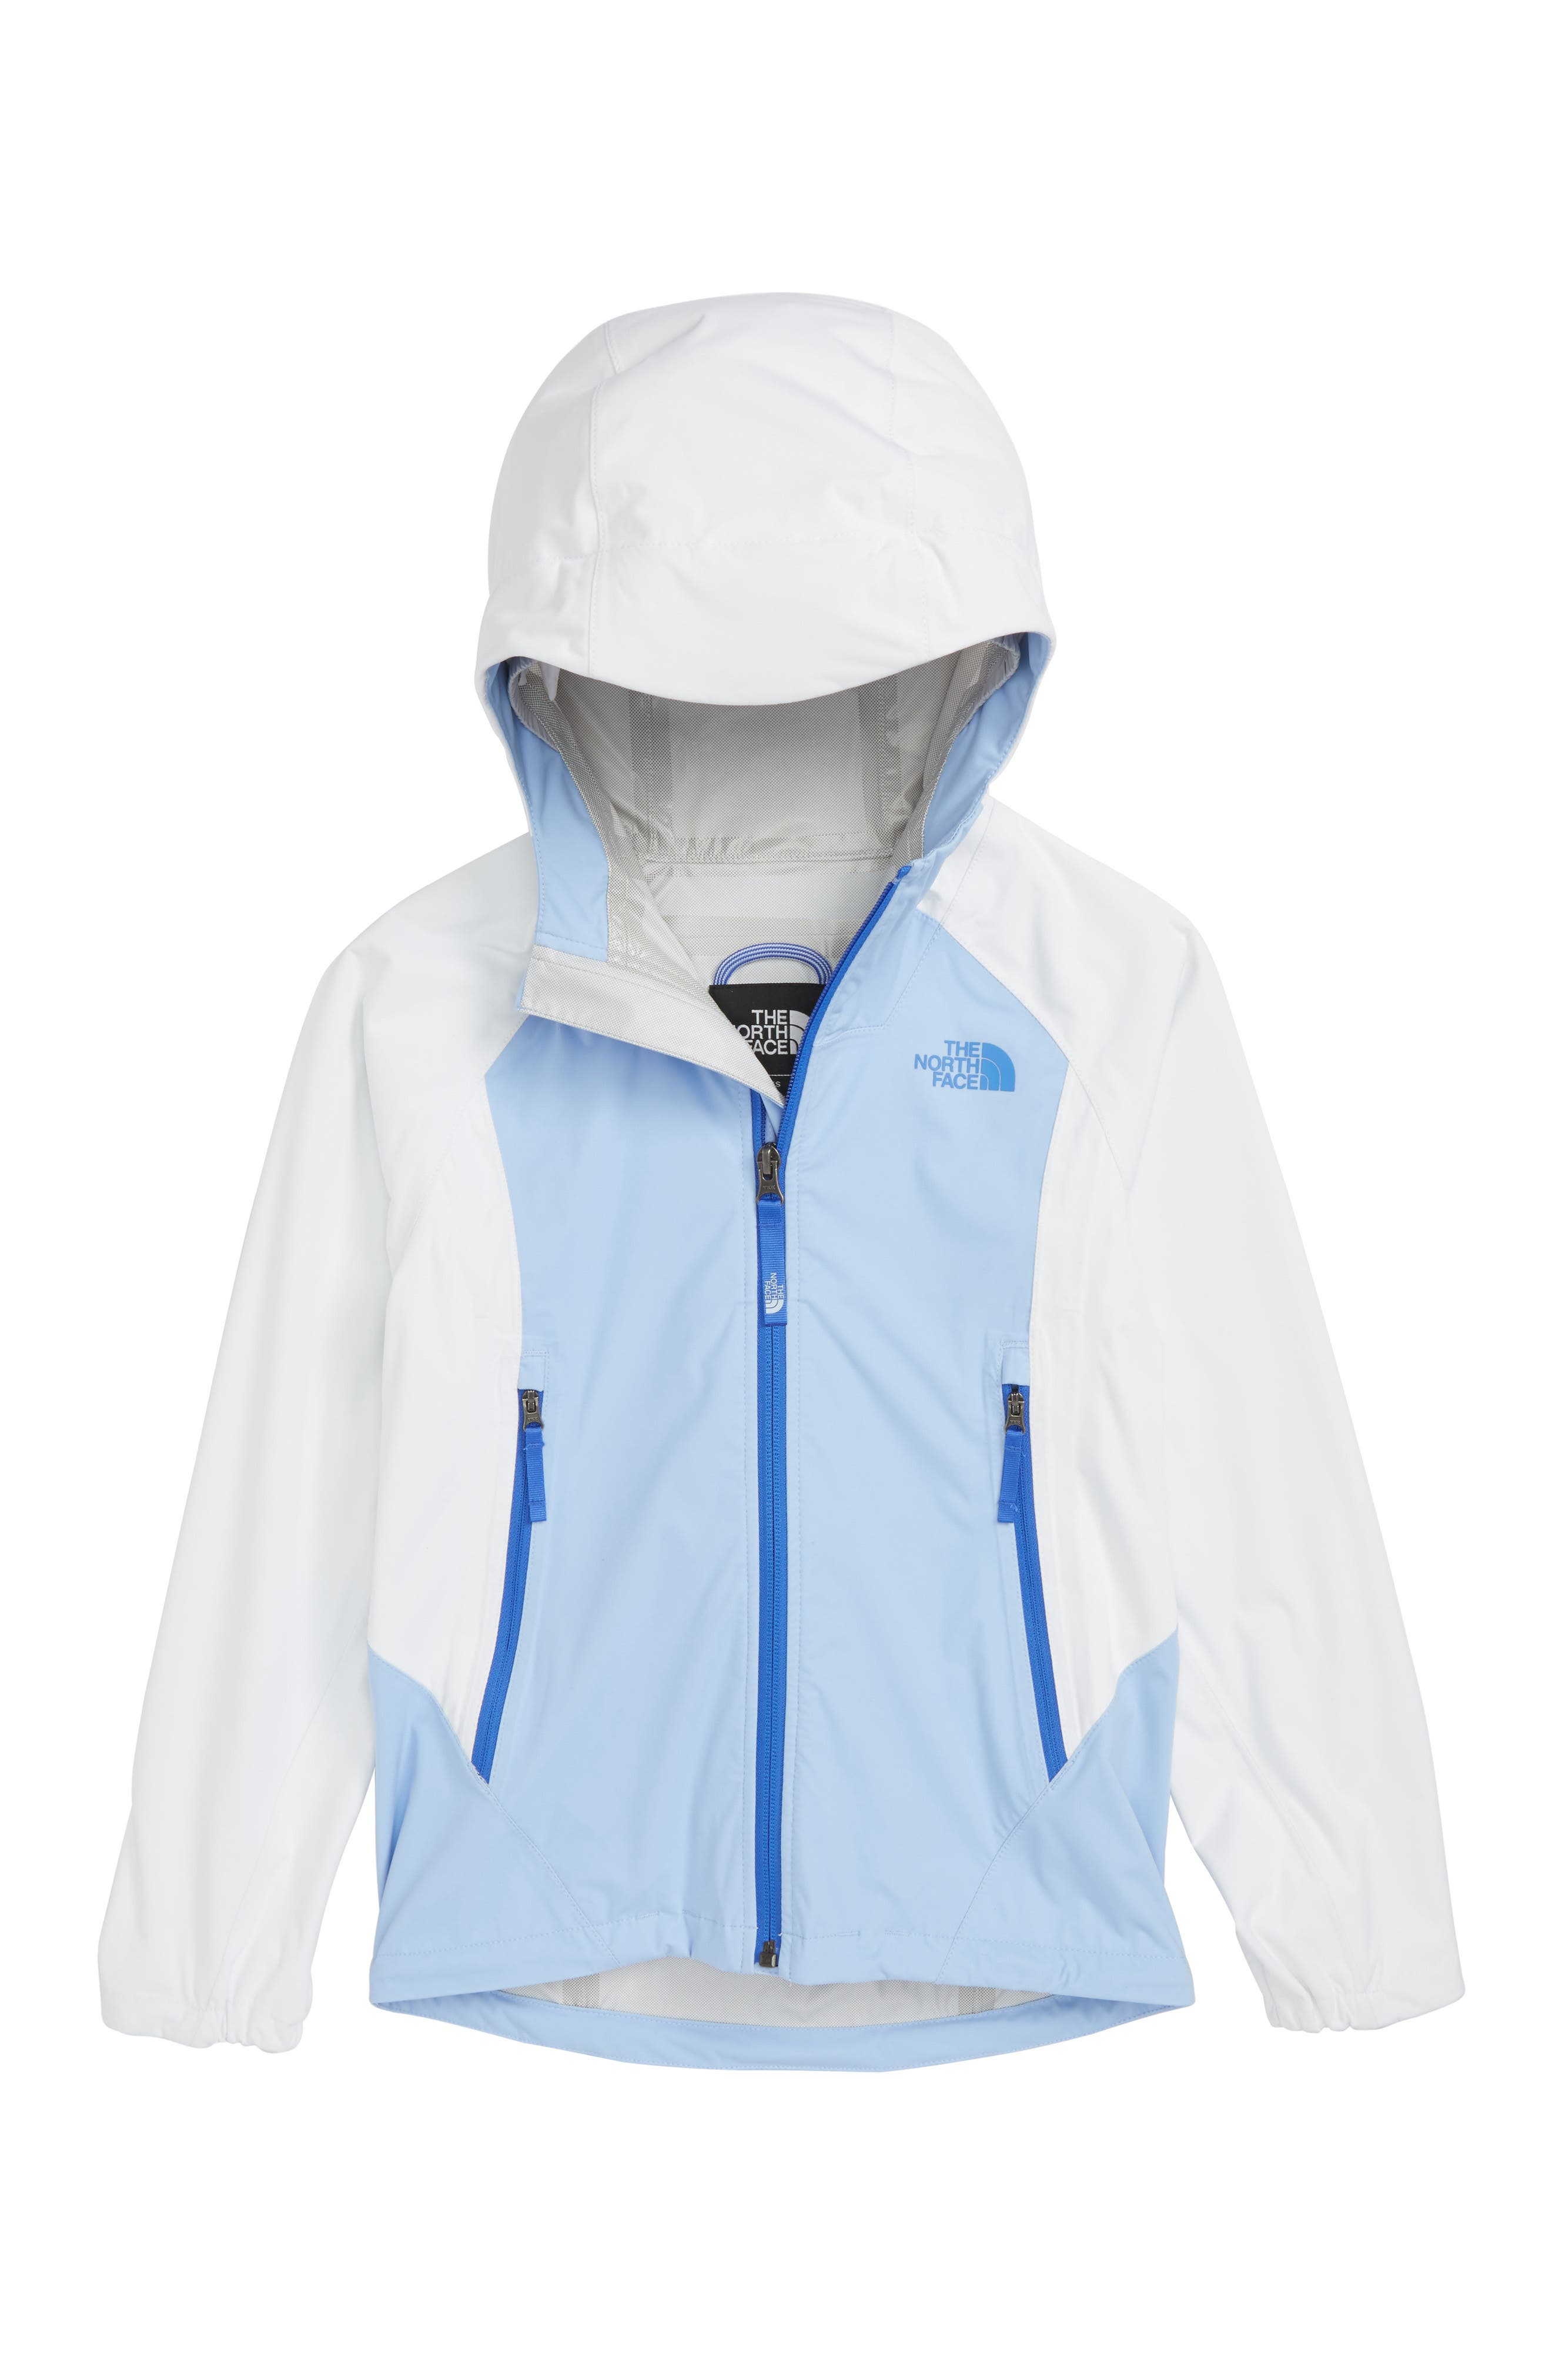 Allproof Stretch Hooded Rain Jacket,                         Main,                         color,